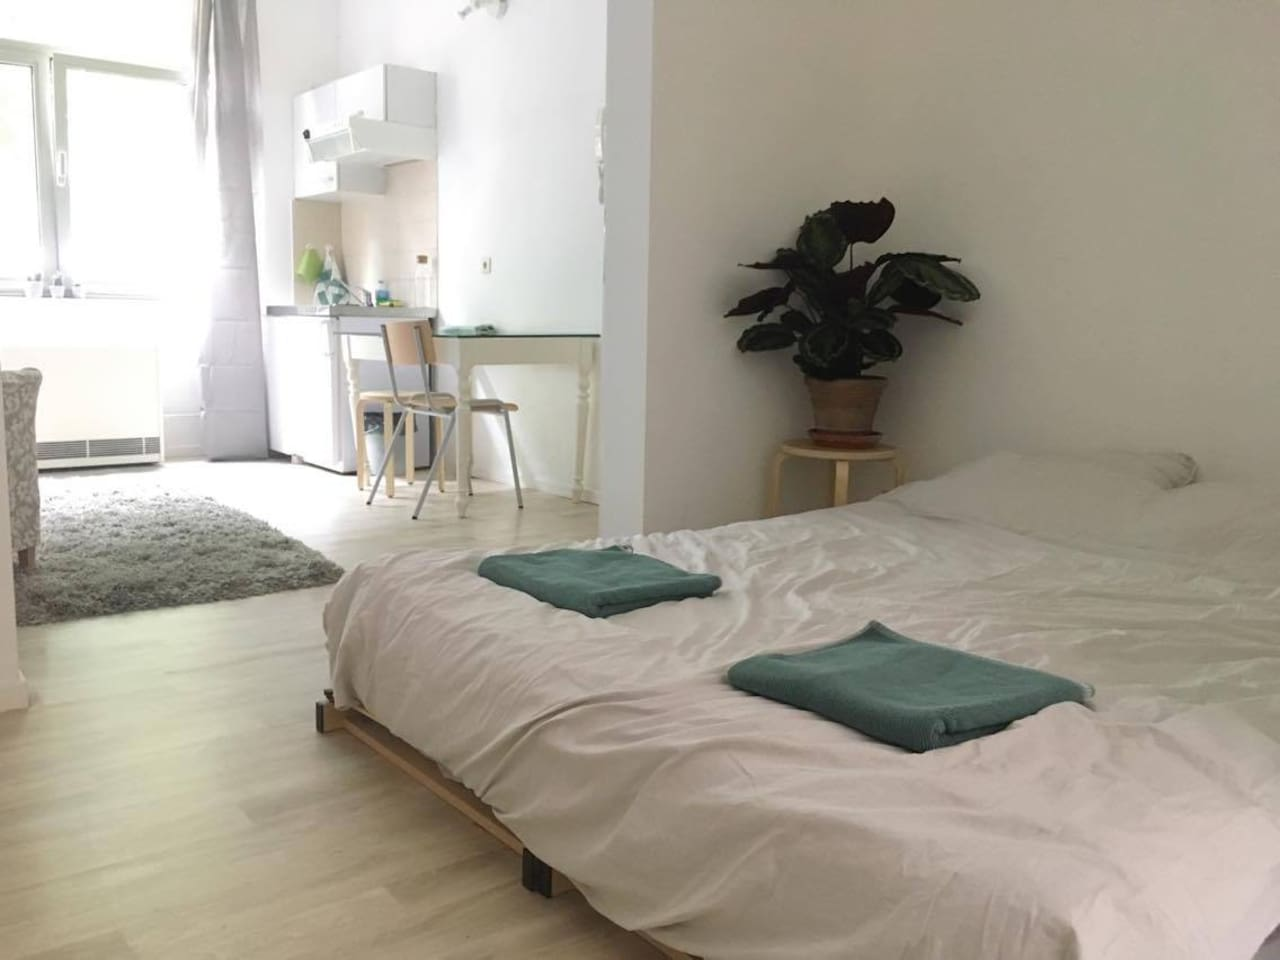 Sleeping area - I'm happy to provide sheets and towels